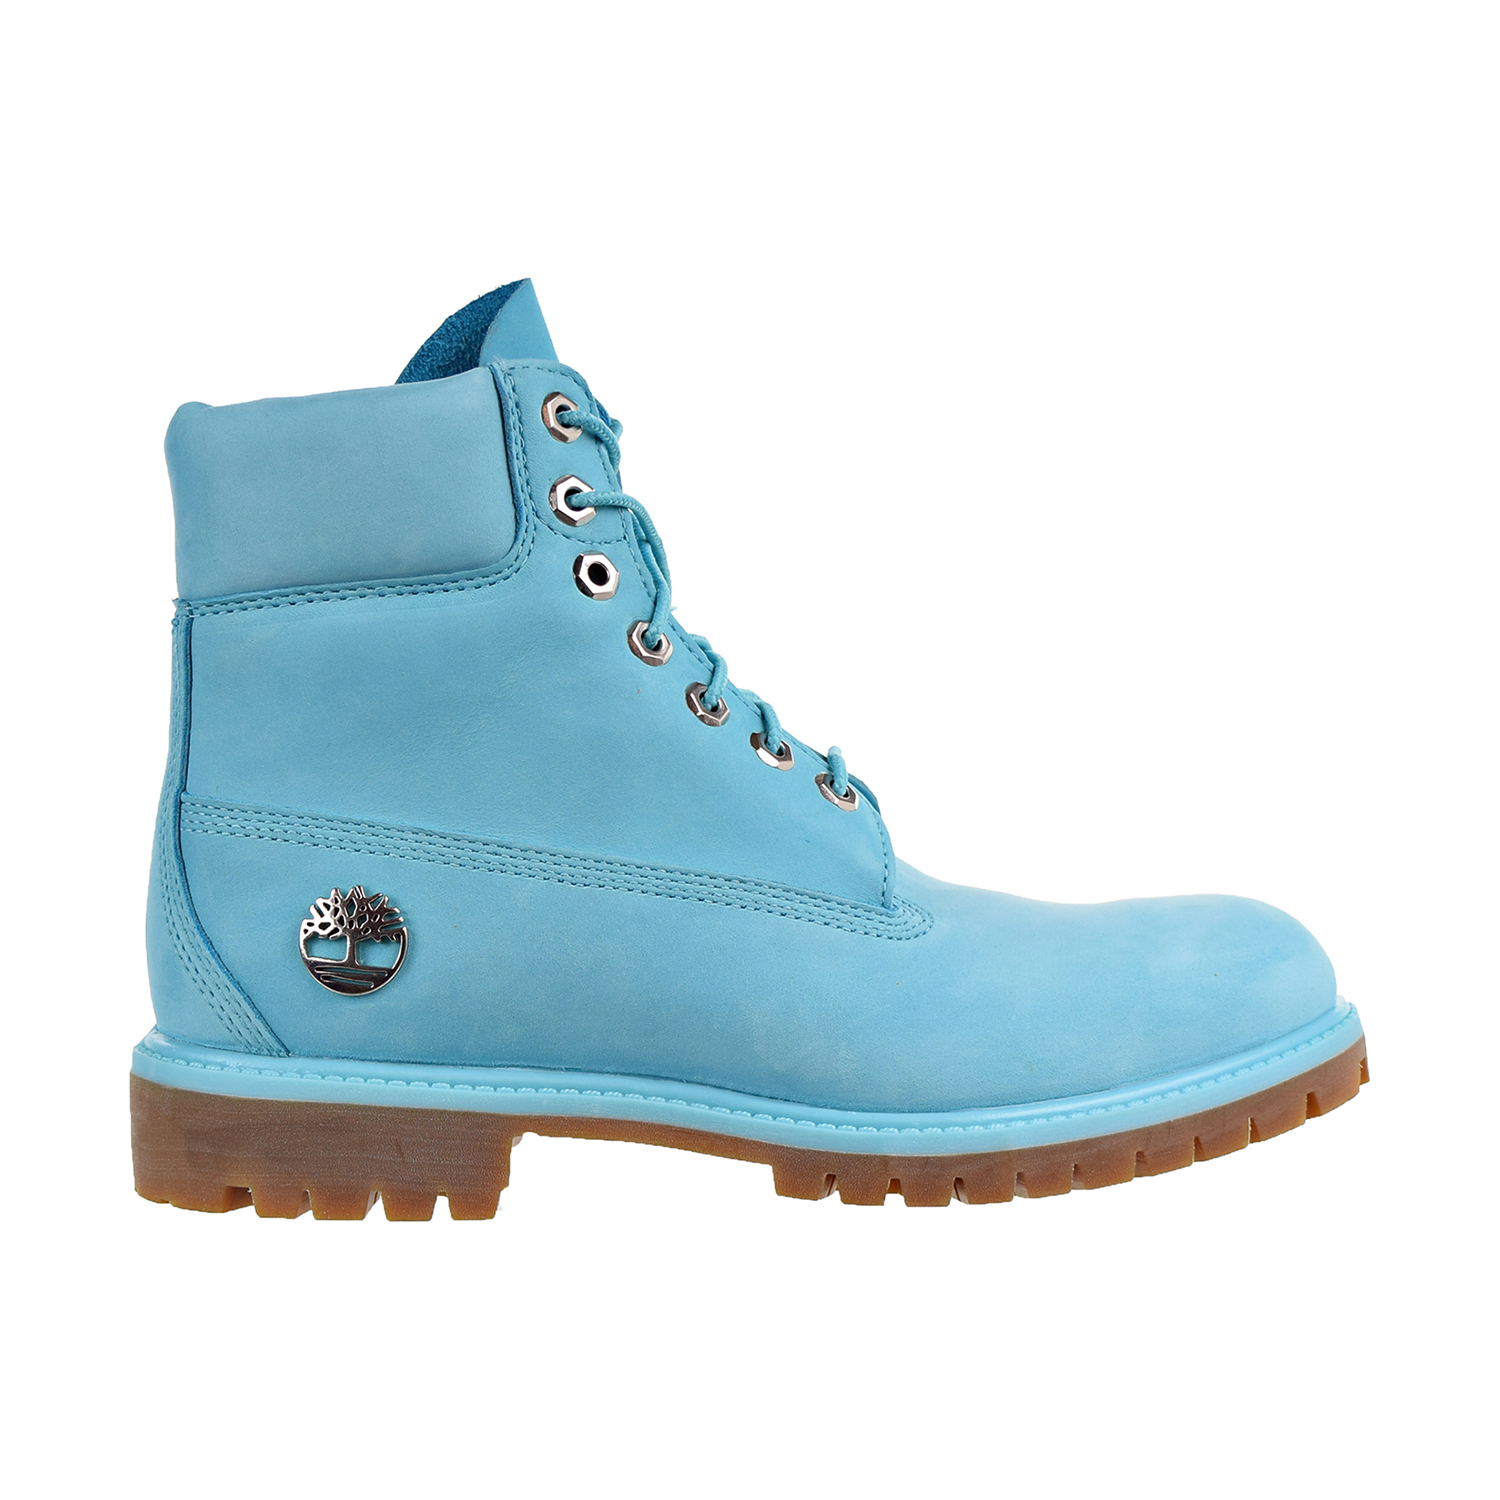 Timberland 6 Inch Premium Men's Boots Blue tb0a1jm5 by Timberland